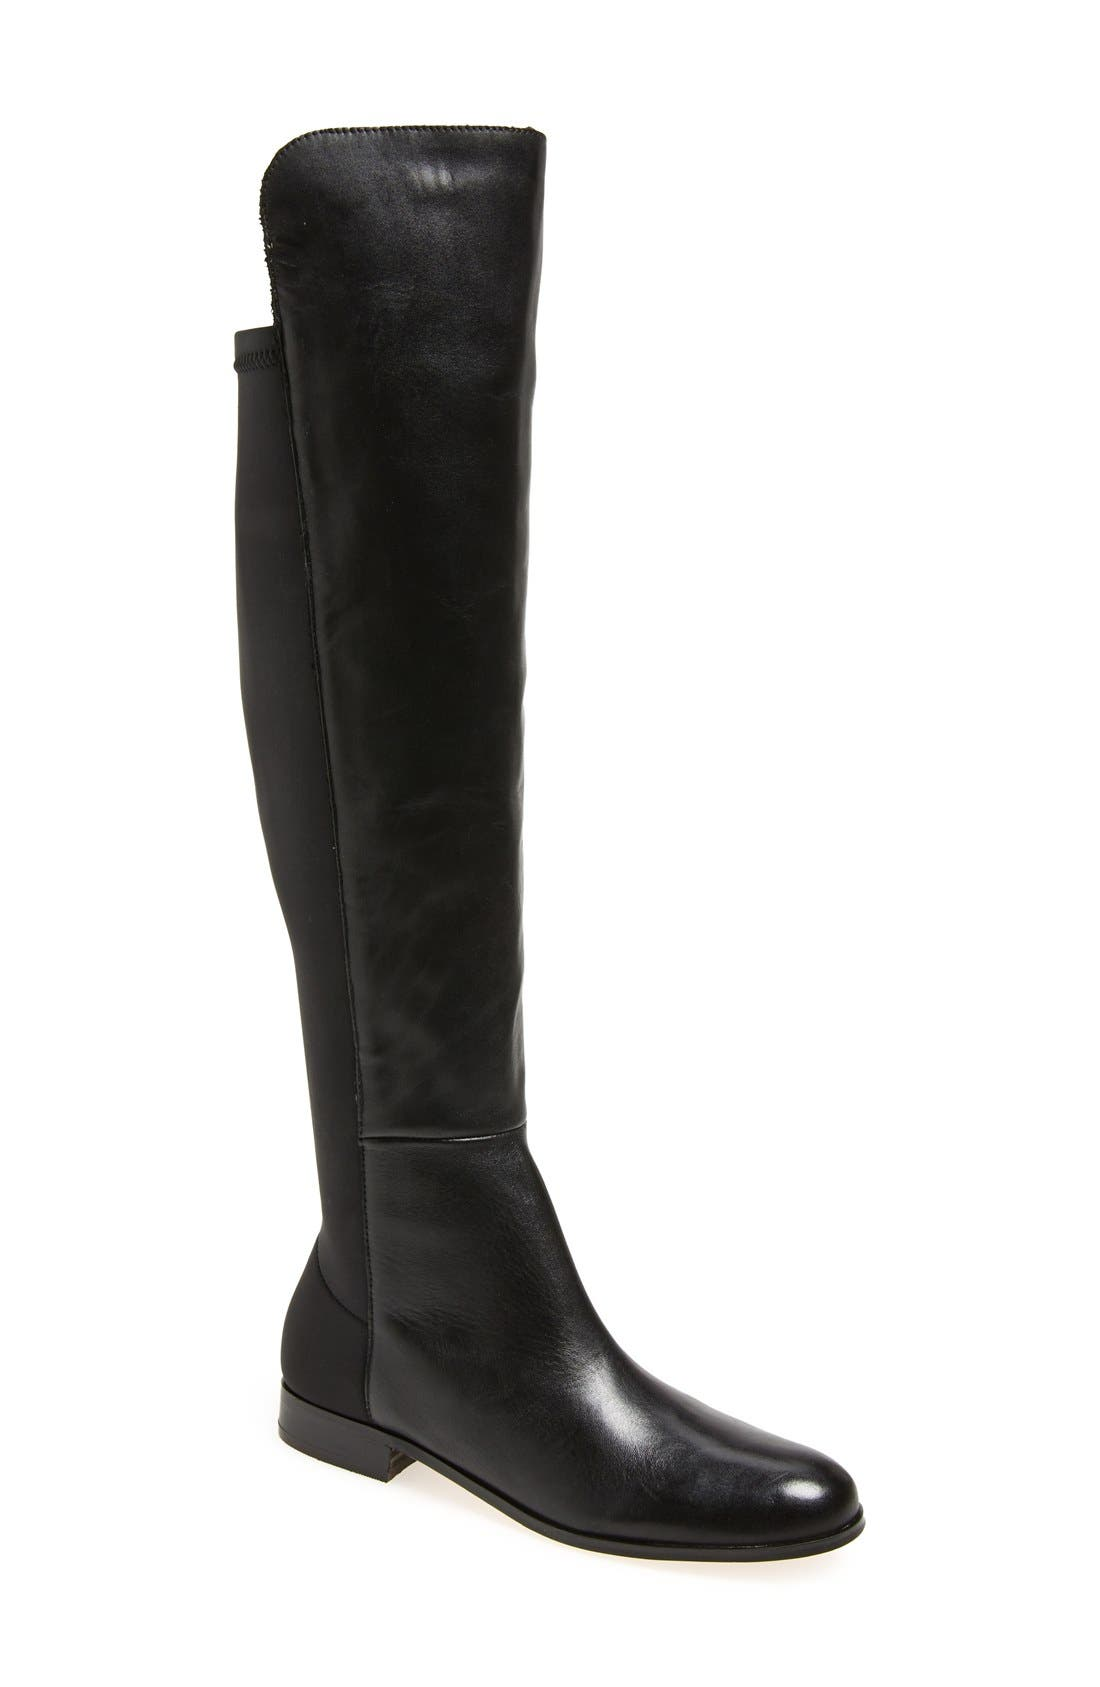 'Laura' Over the Knee Boot,                             Main thumbnail 1, color,                             Black Leather